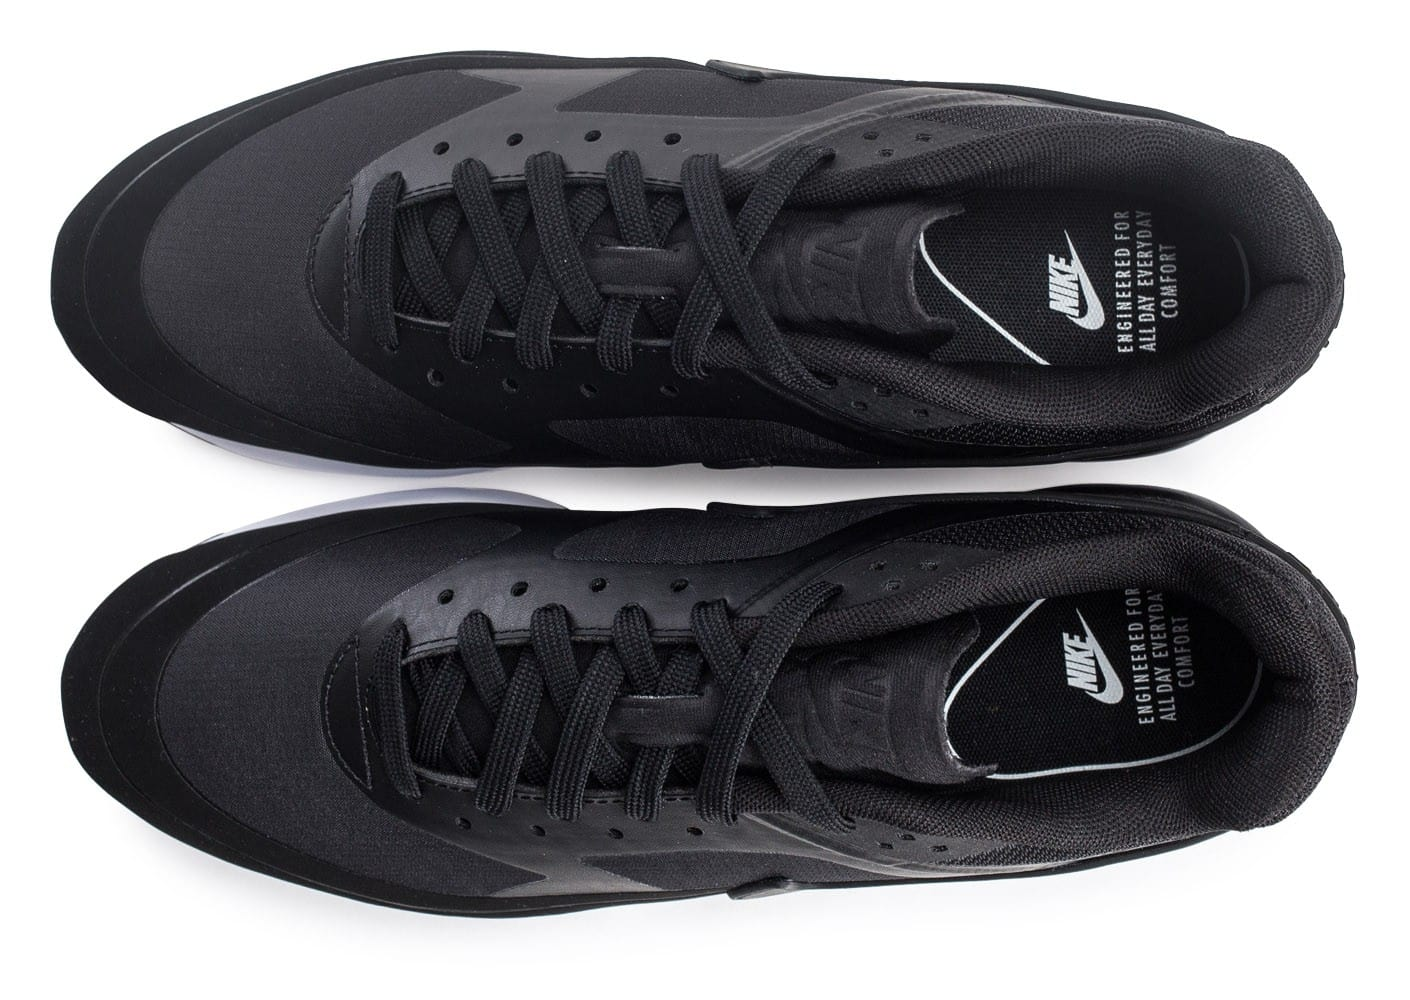 timeless design 50e35 6c354 ... Chaussures Nike Air Max BW Ultra Leather anthracite vue arrière ...